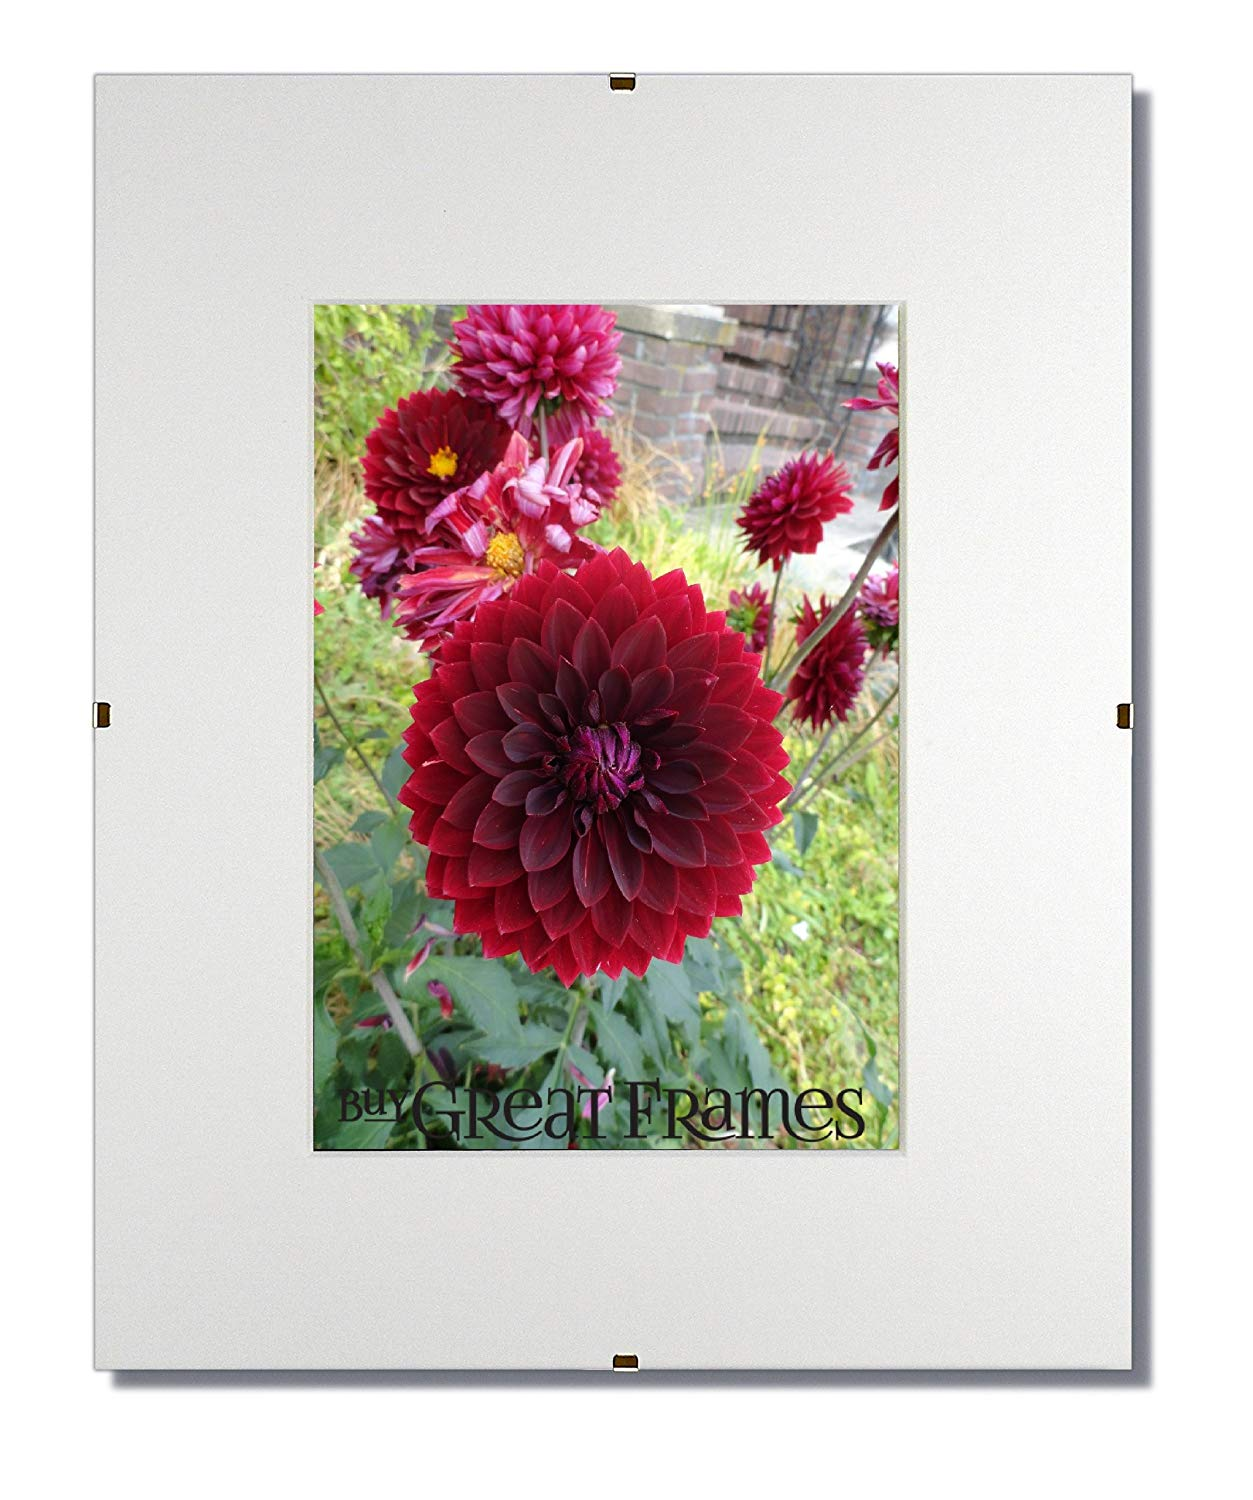 c896ef6dc2 Get Quotations · Set of 3 - 11x14 Glass and Clip Frames with Single White  Mats for 8.5x11